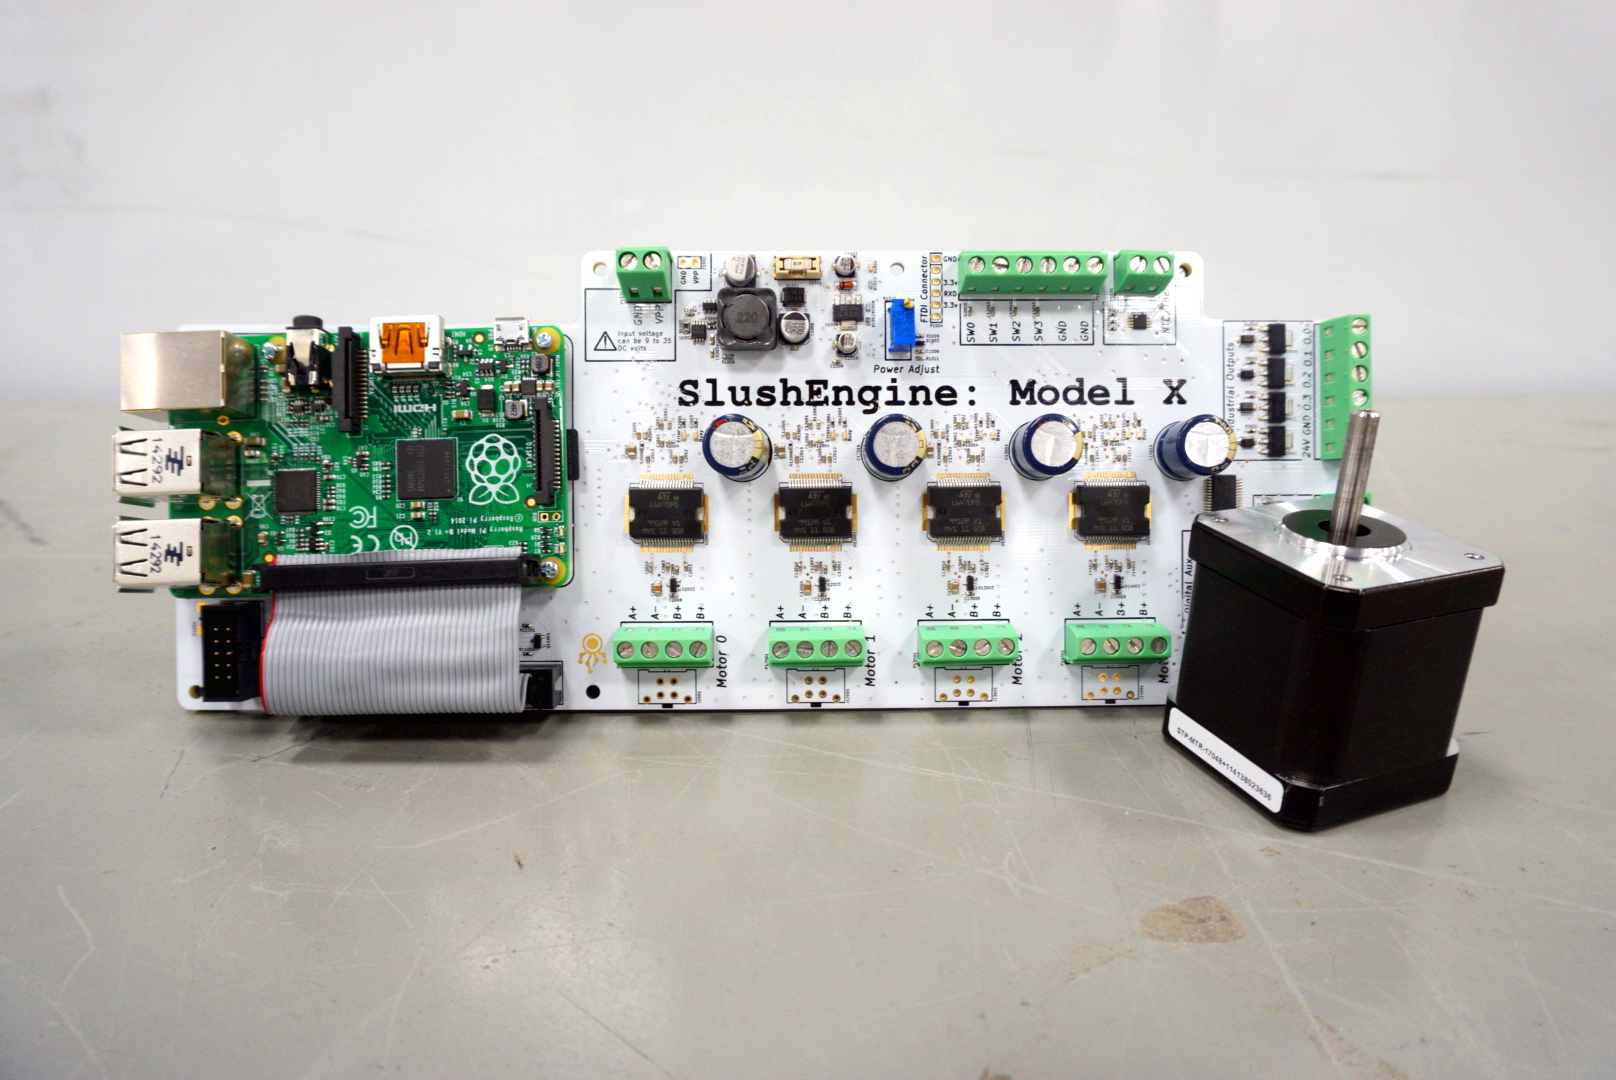 Slushengine stepper motor controller for raspberry pi for Raspberry pi stepper motor controller